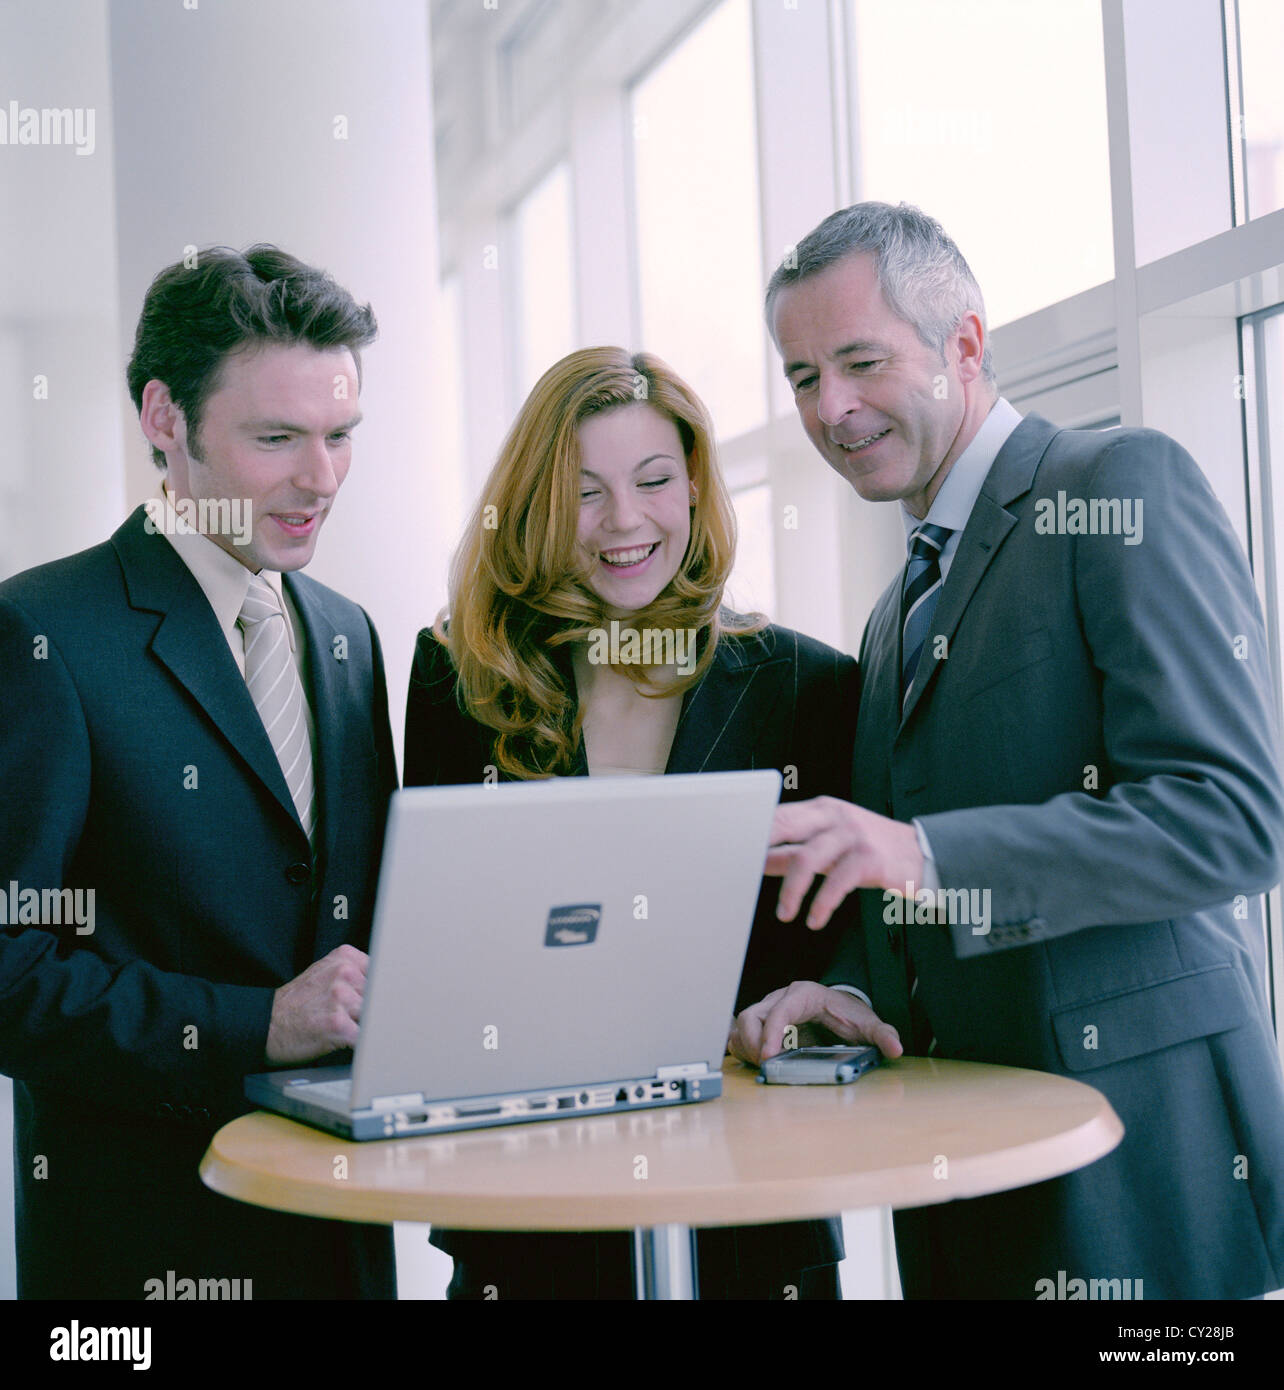 business people man woman confidence cooperation laptop notebook License free except ads and outdoor billboards Stock Photo